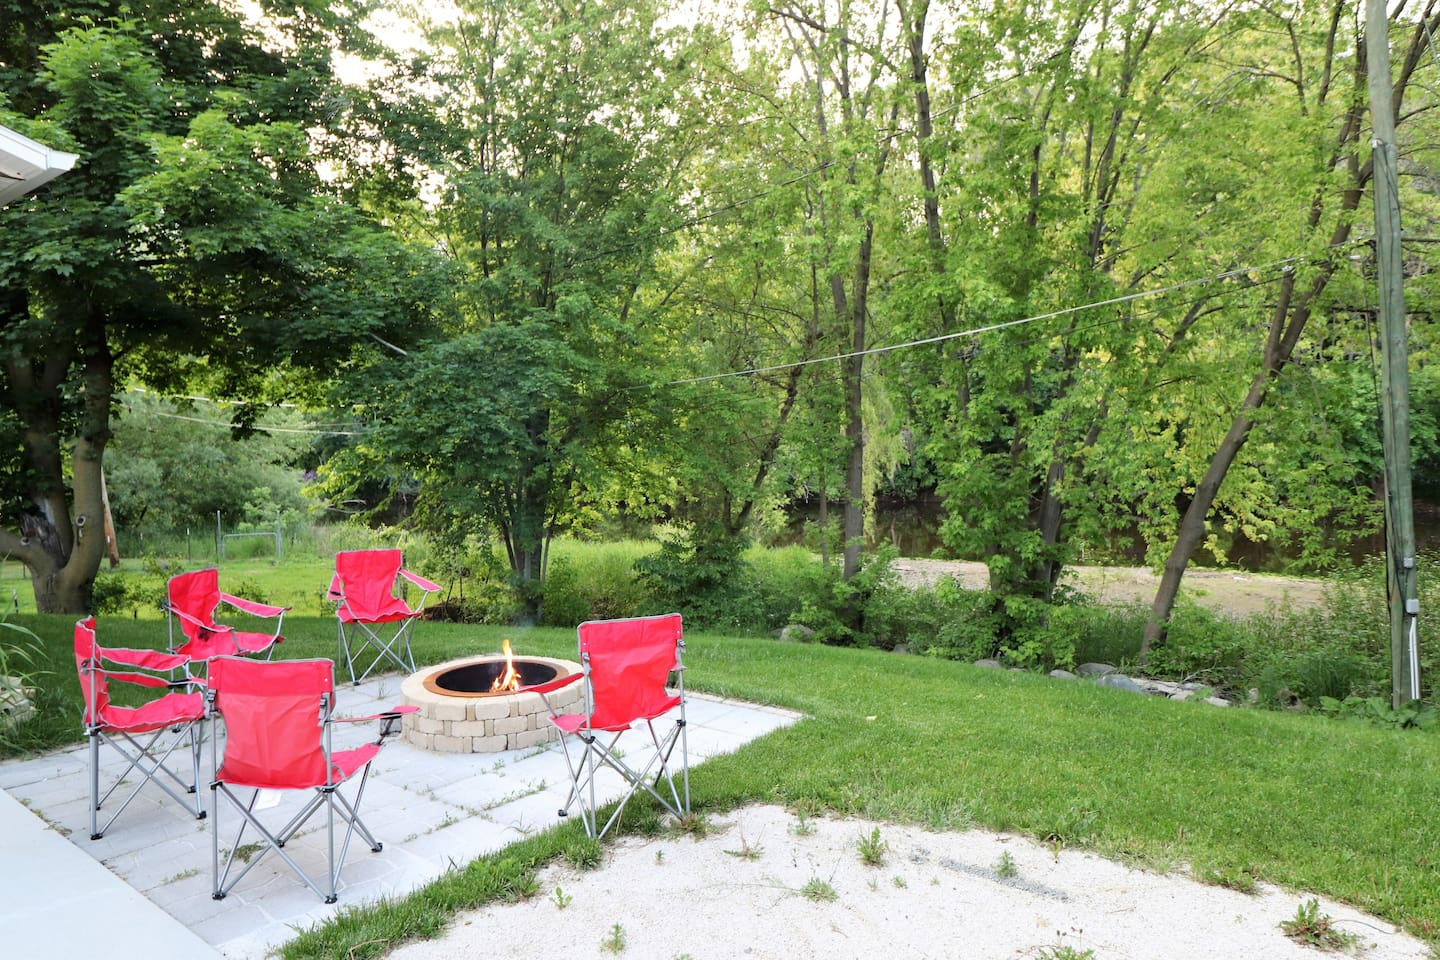 Fire pit and backyard backing up to the Sheboygan River. Enjoy your evening with friends around a fire.